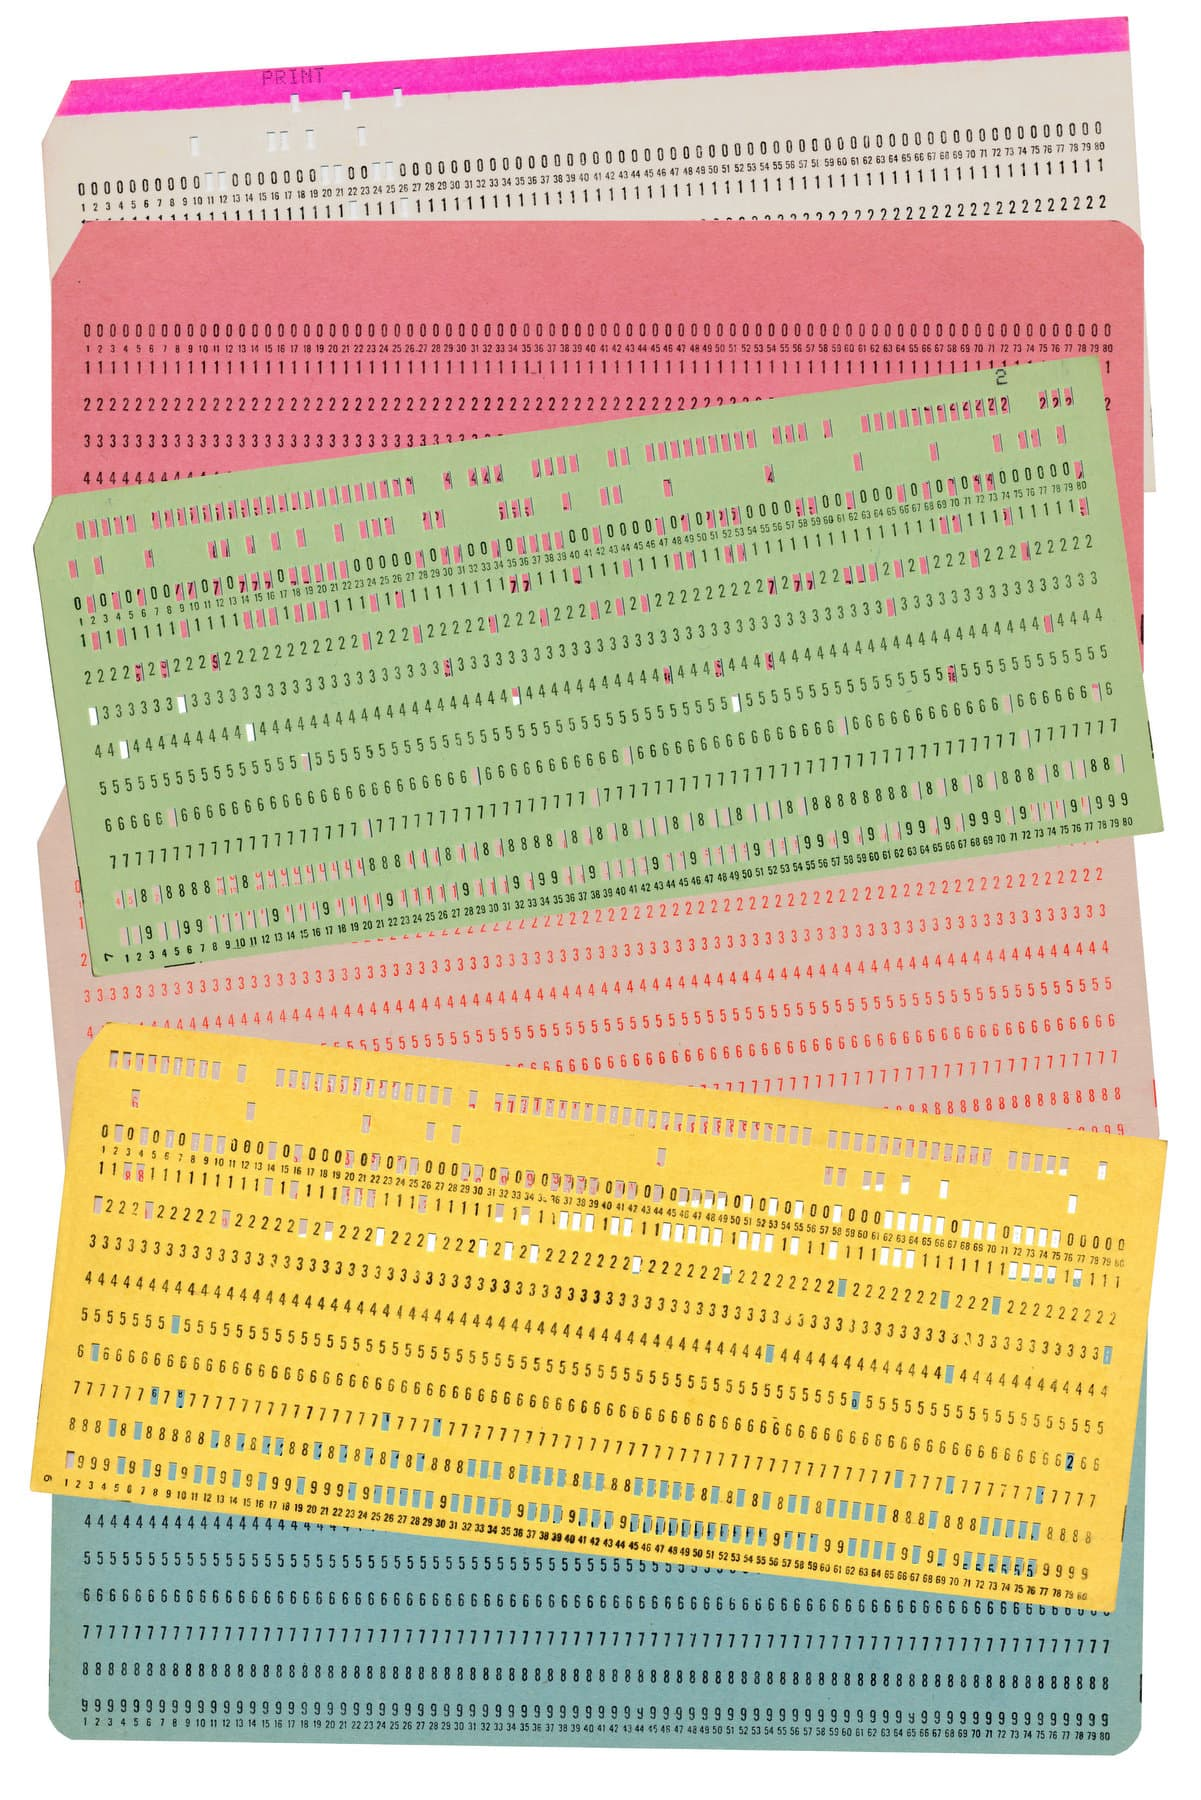 Vintage computer punch cards